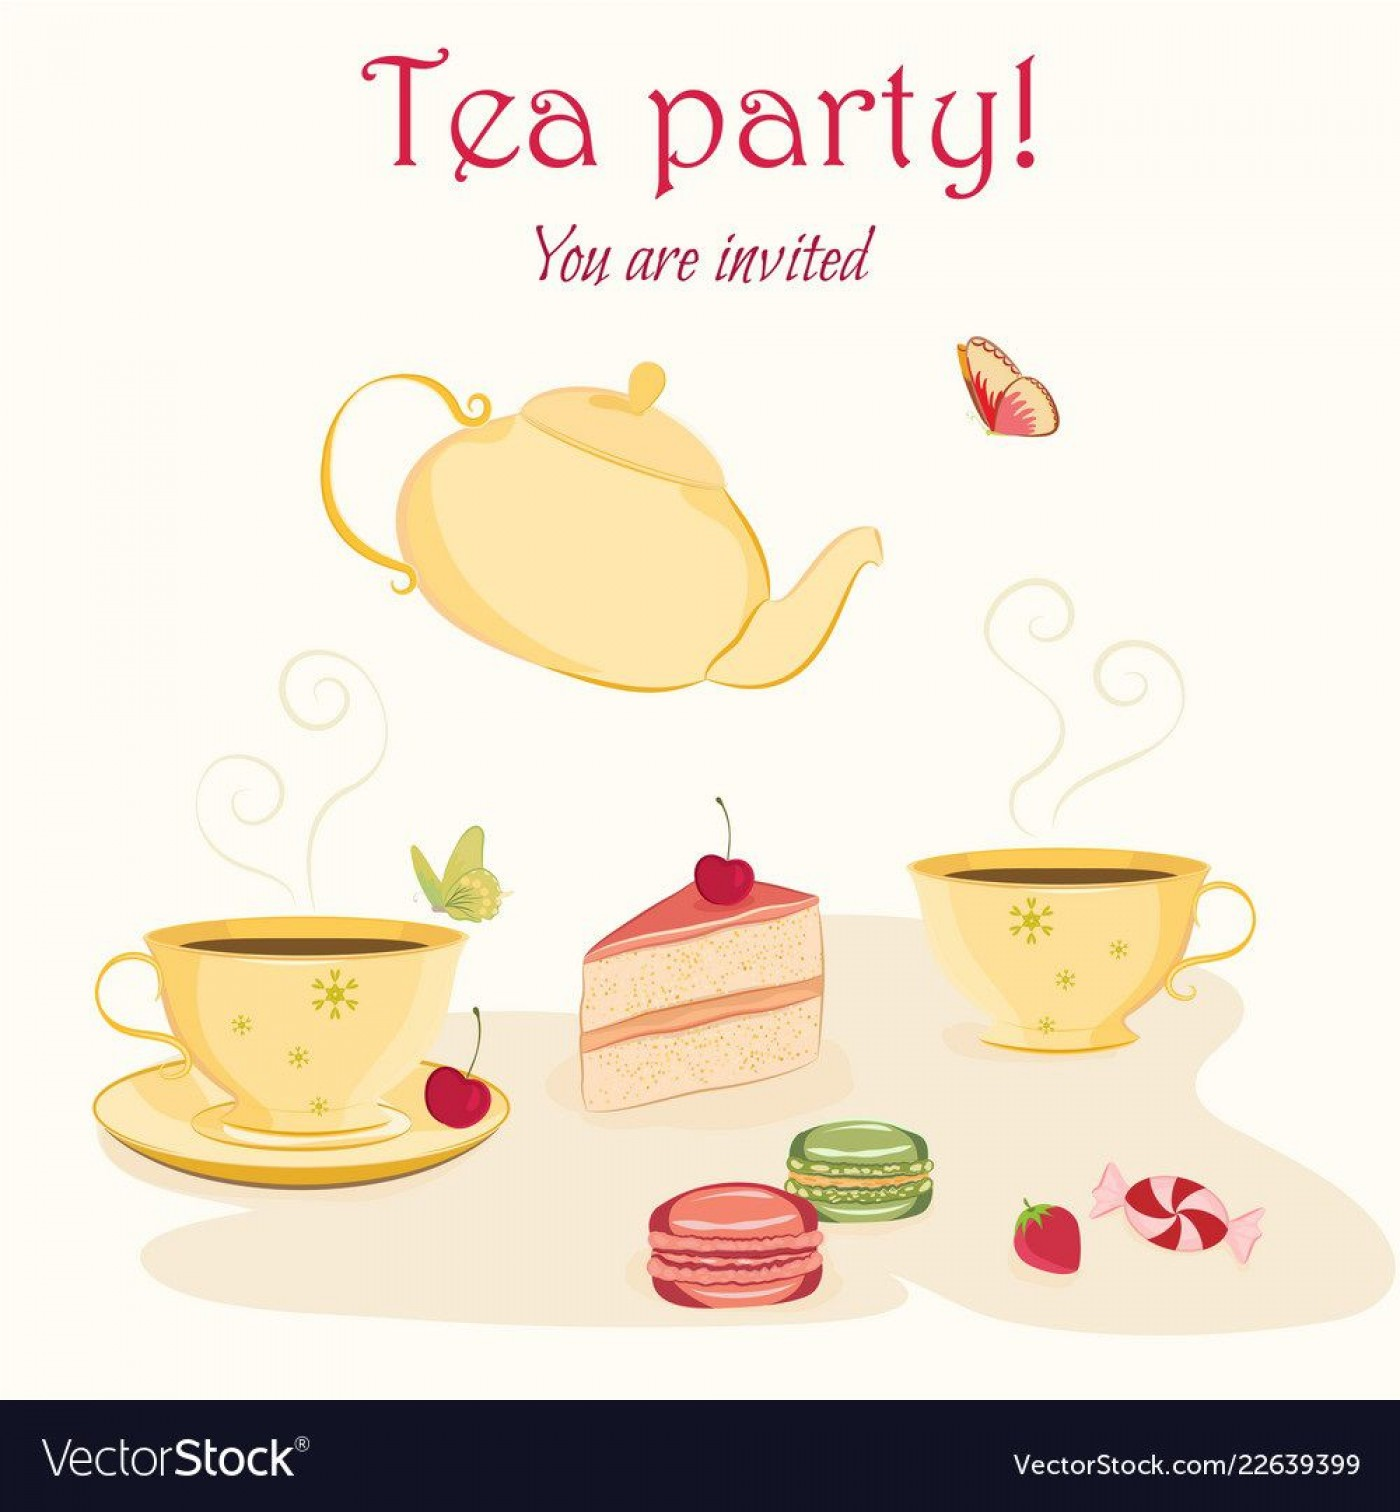 007 Exceptional Tea Party Invitation Template Photo  Card Victorian Wording For Bridal Shower1400